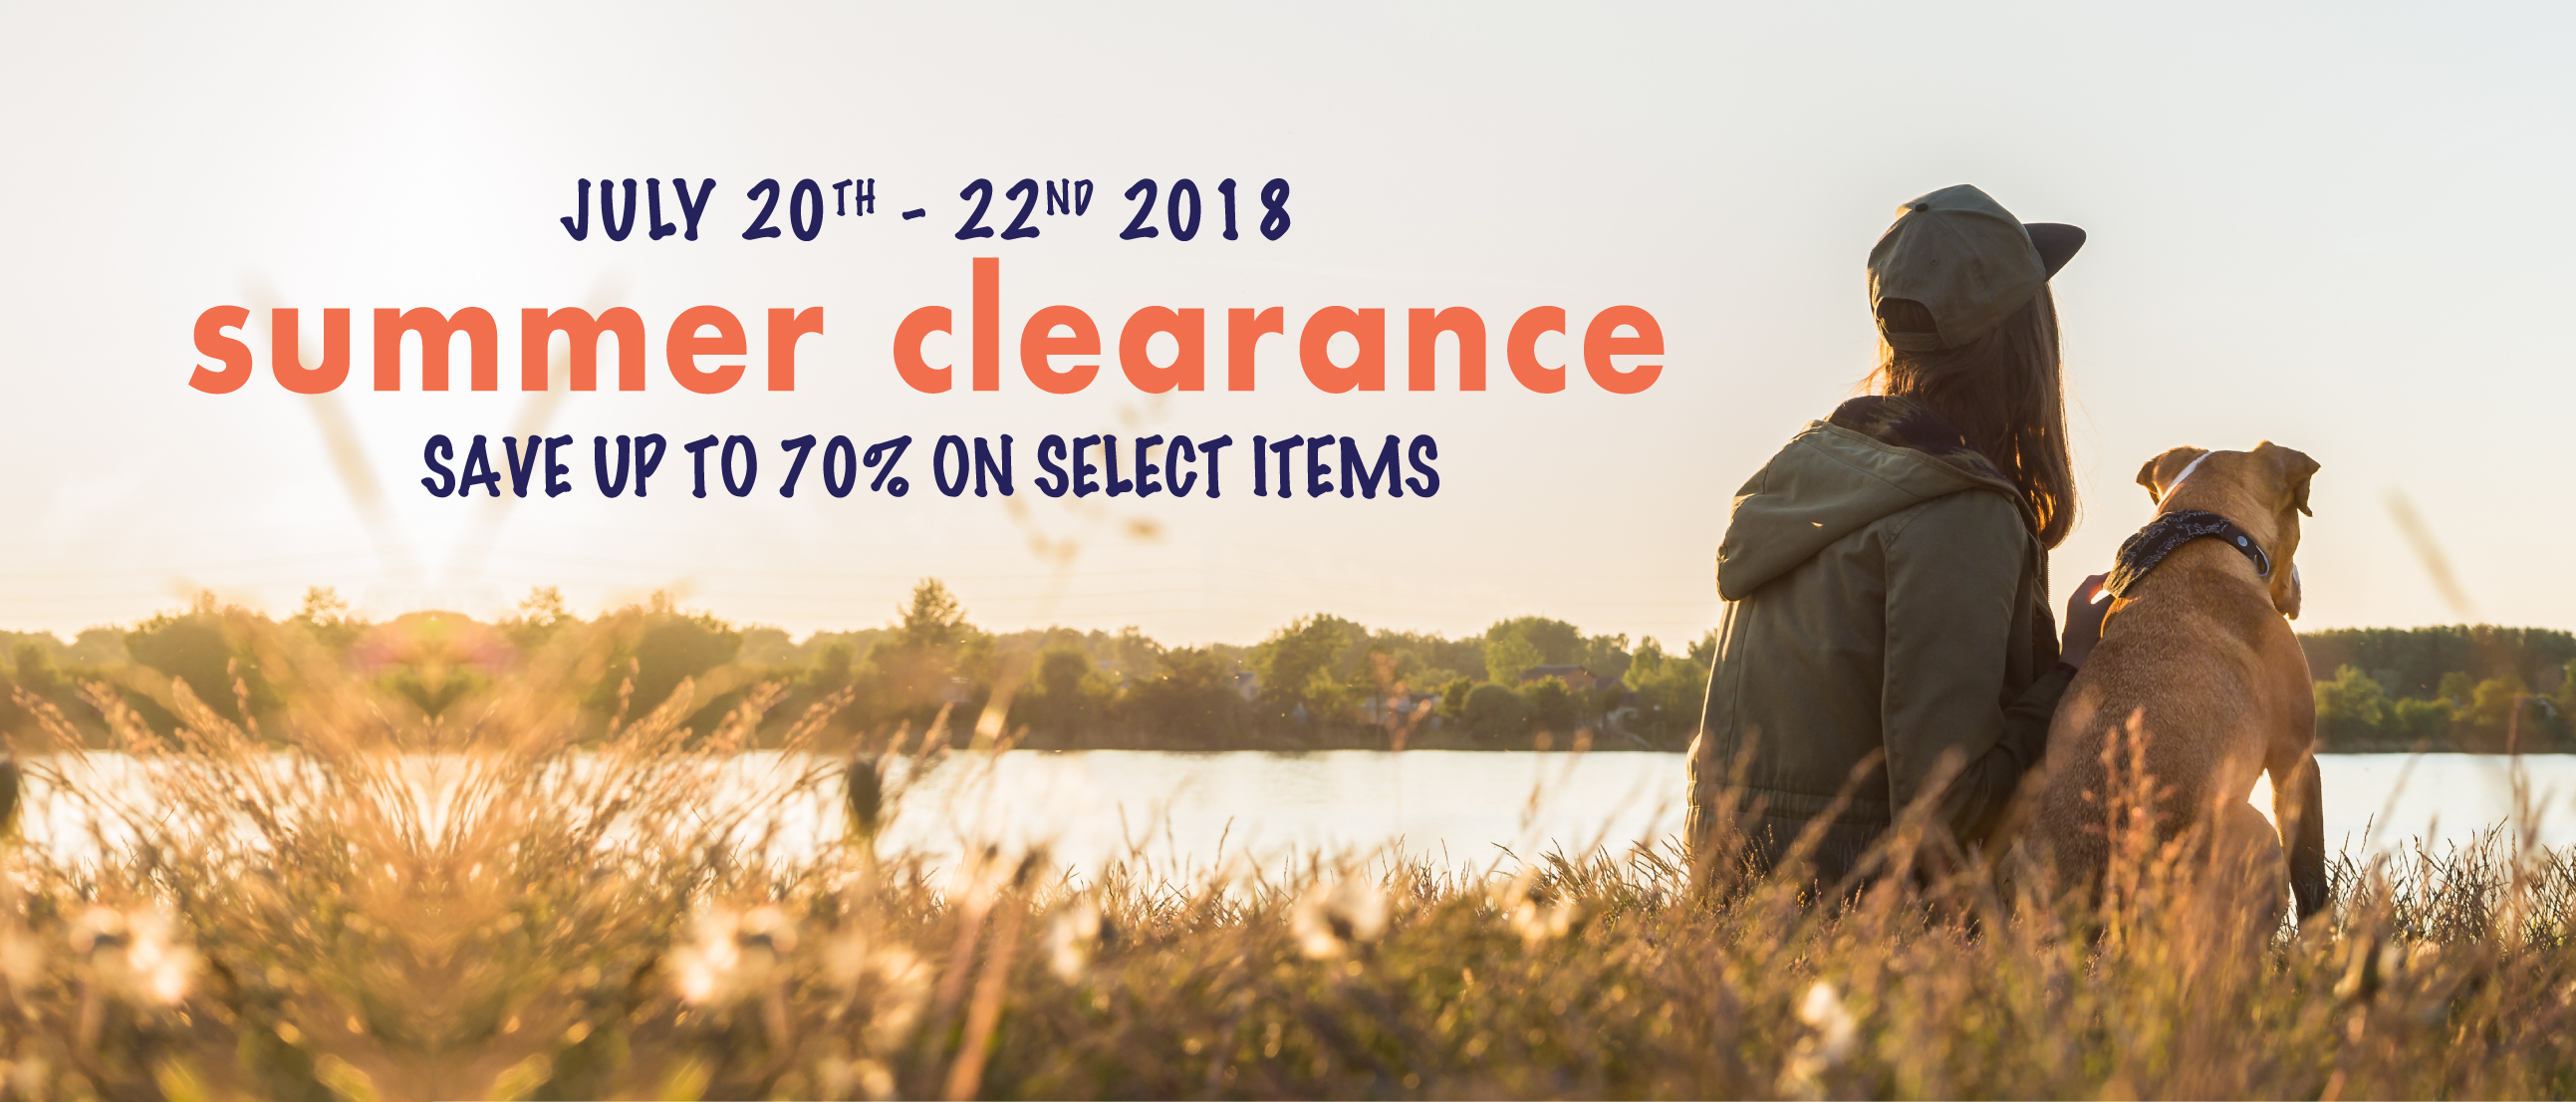 summer-clearance-2018-home-page-banner.jpg